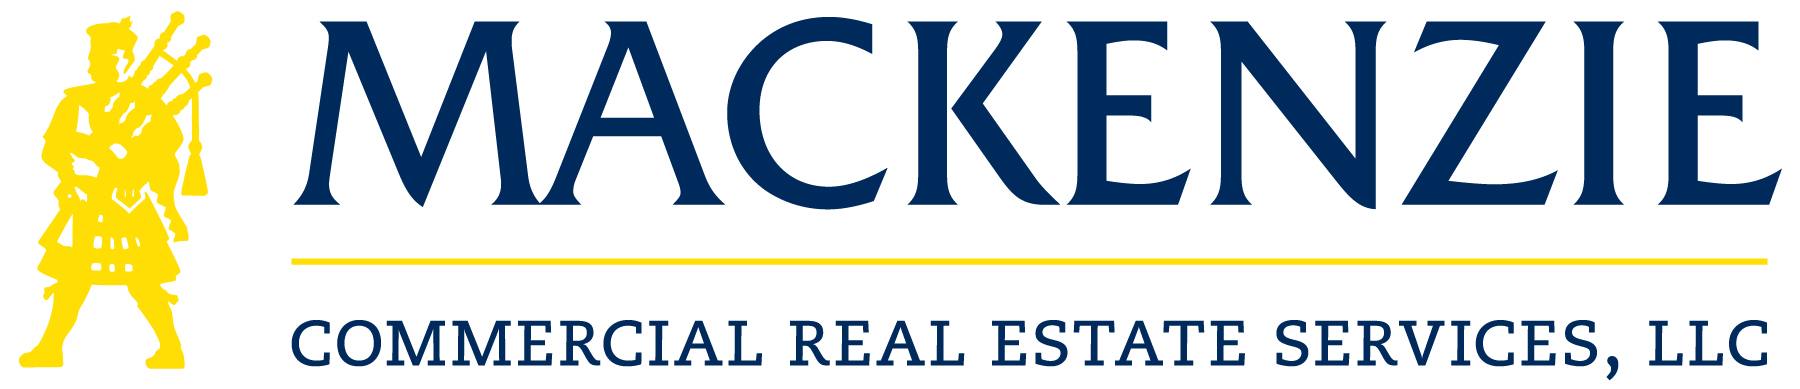 Mackenzie Commercial Real Estate Services